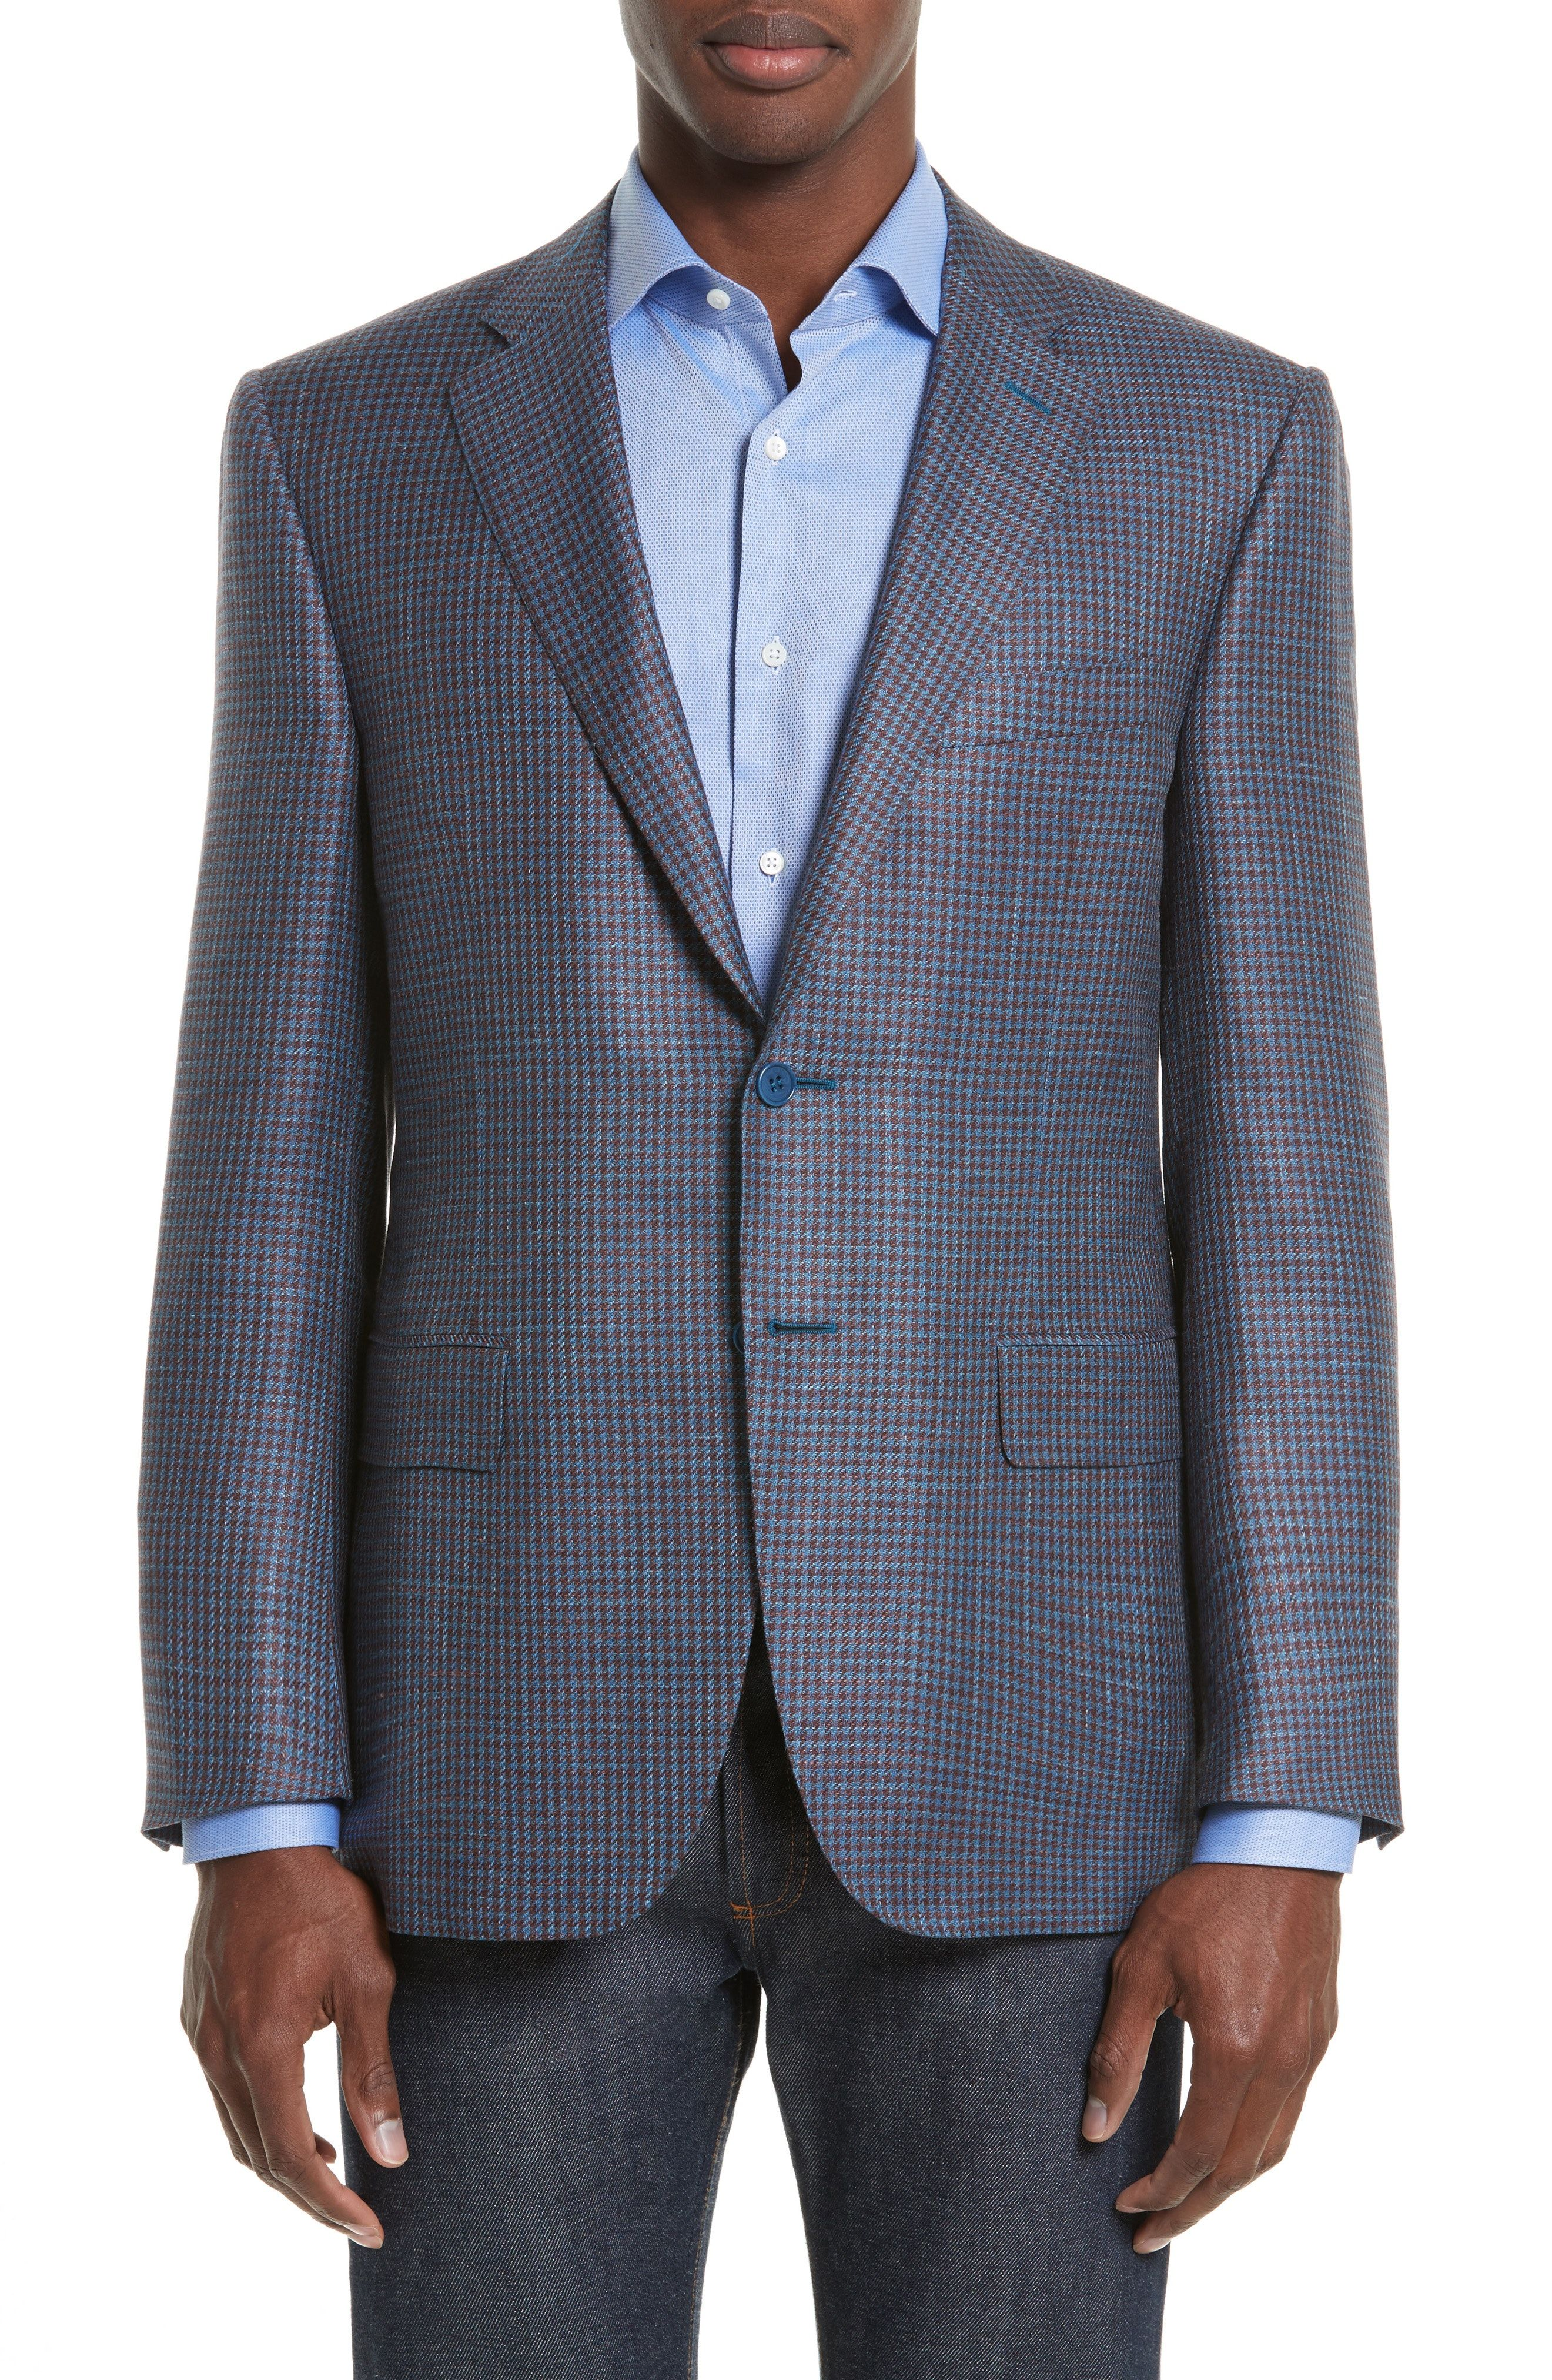 Canali Classic Fit Houndstooth Wool Suit Free Shipping Perfect Extremely Sale Online Choice Cheap Price AyNB3mKrY